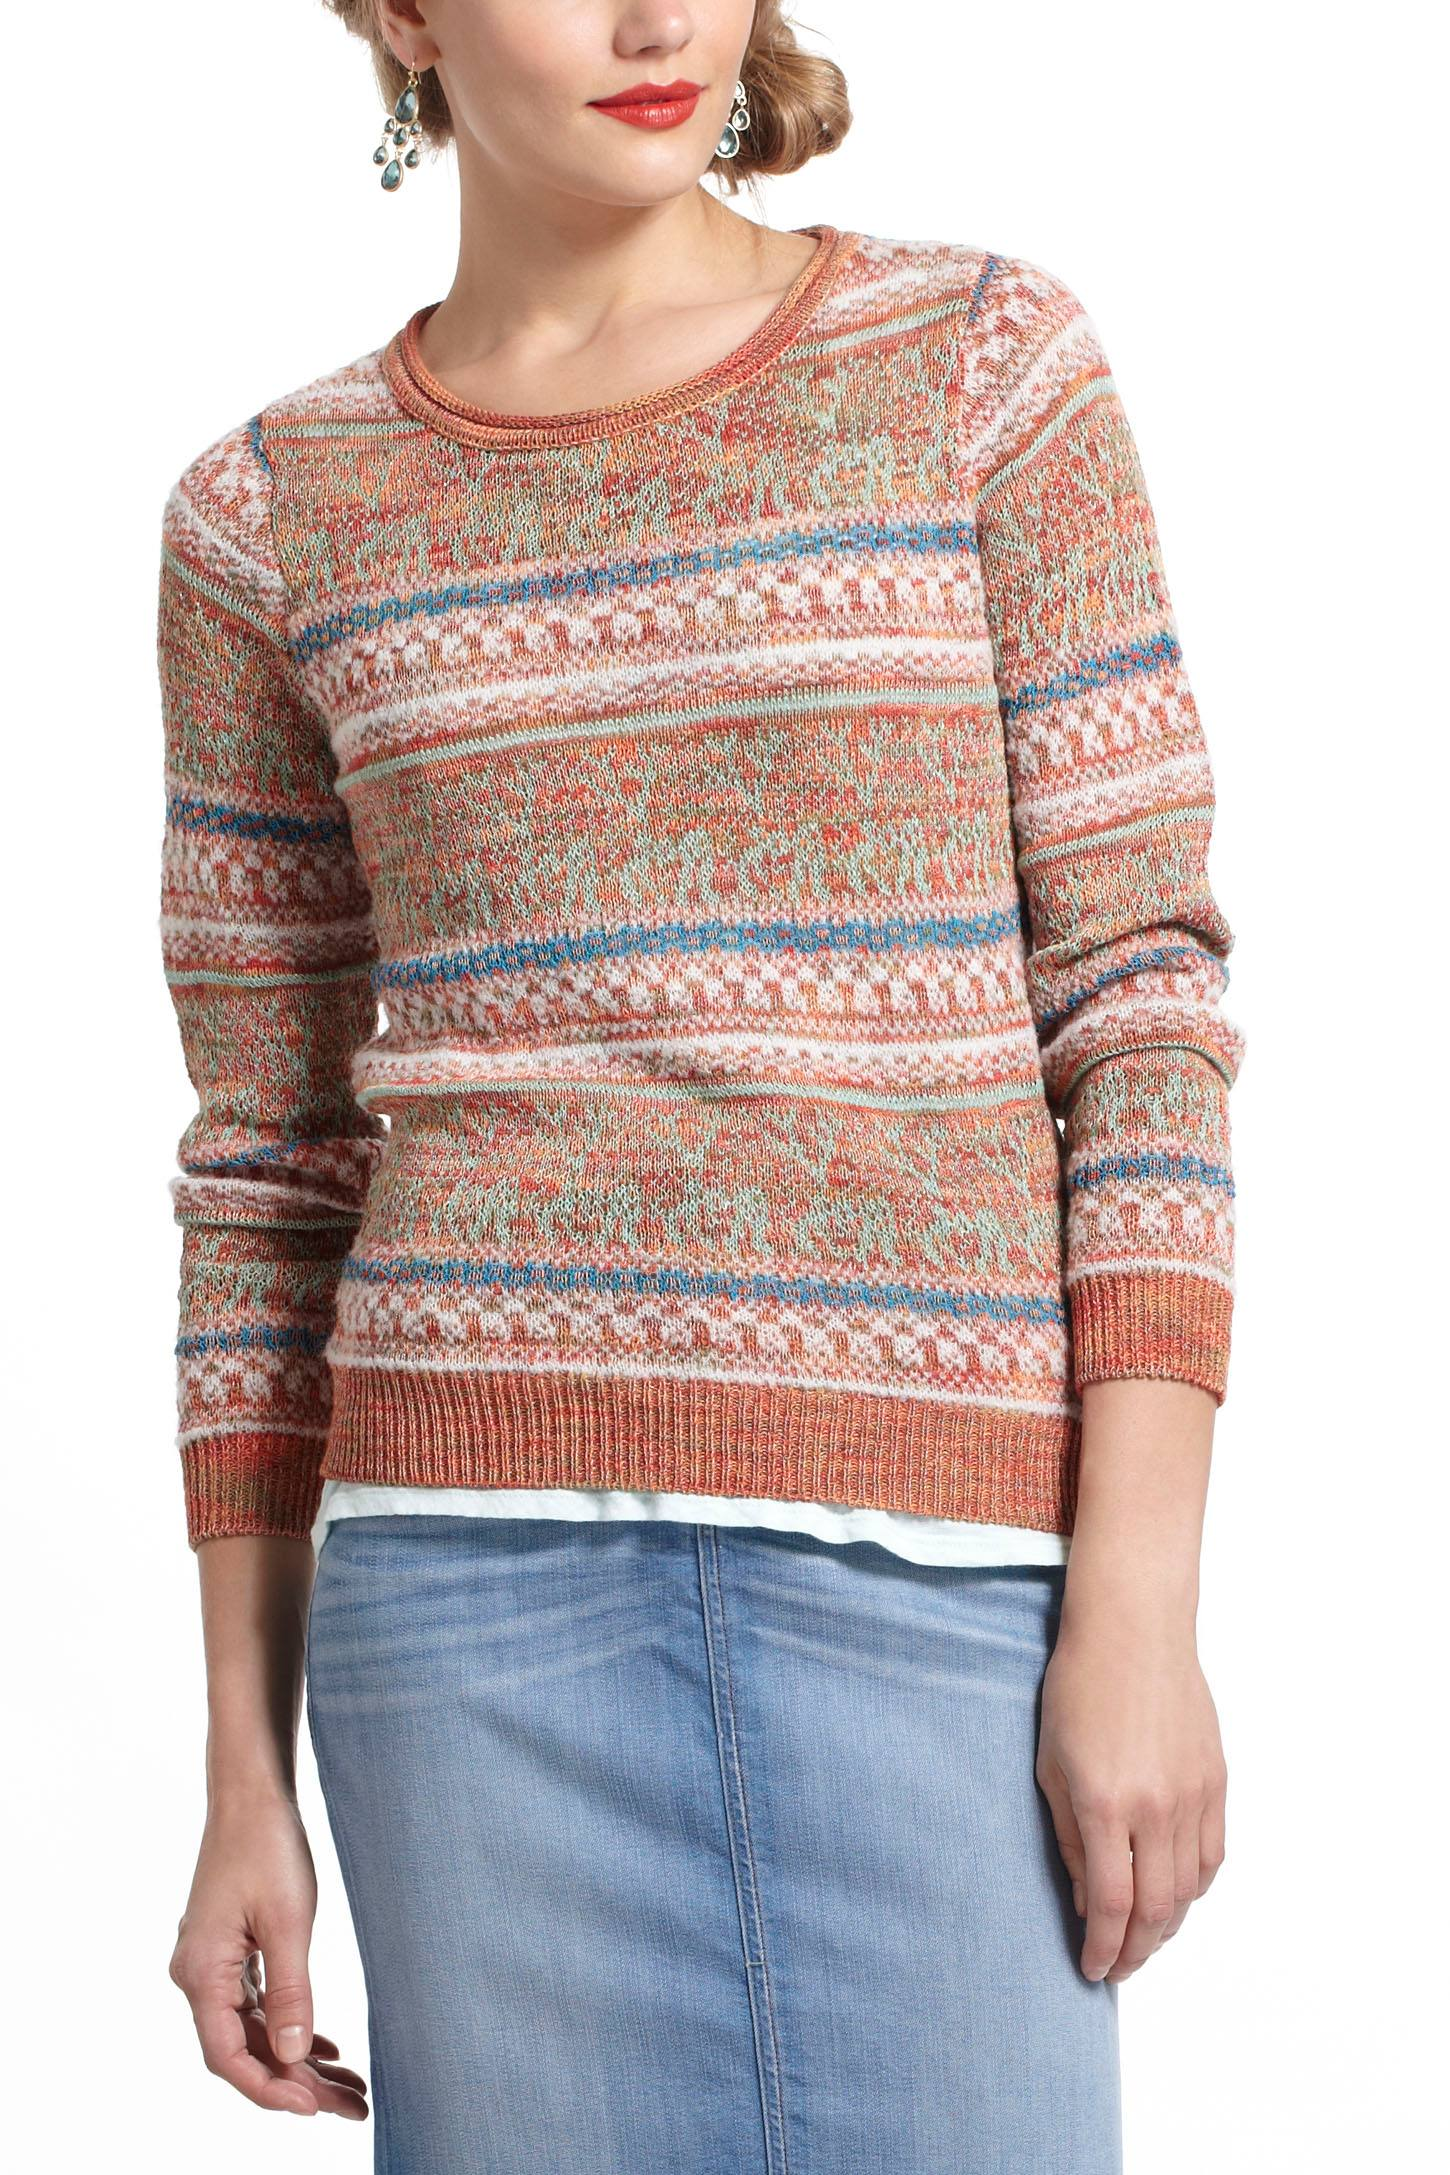 Shimmered Fairisle Sweater